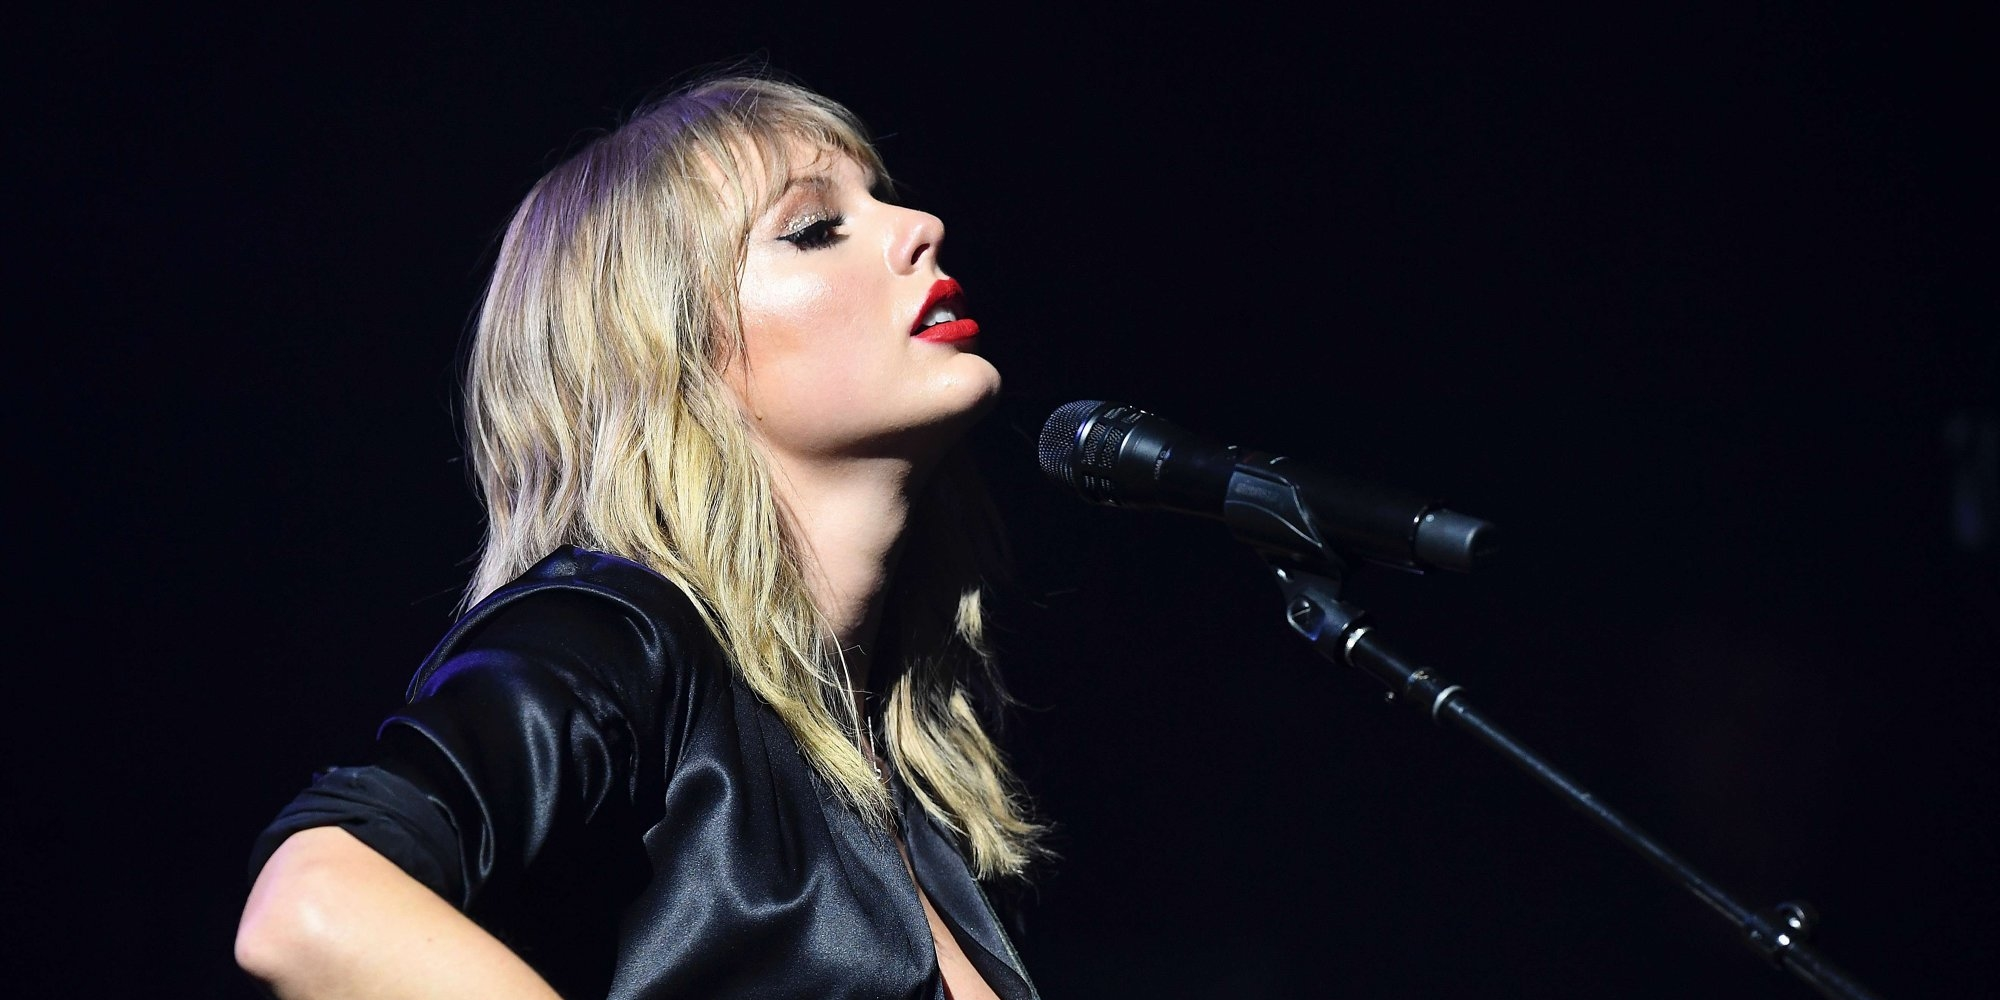 taylor swift city of lover concert paris olympia